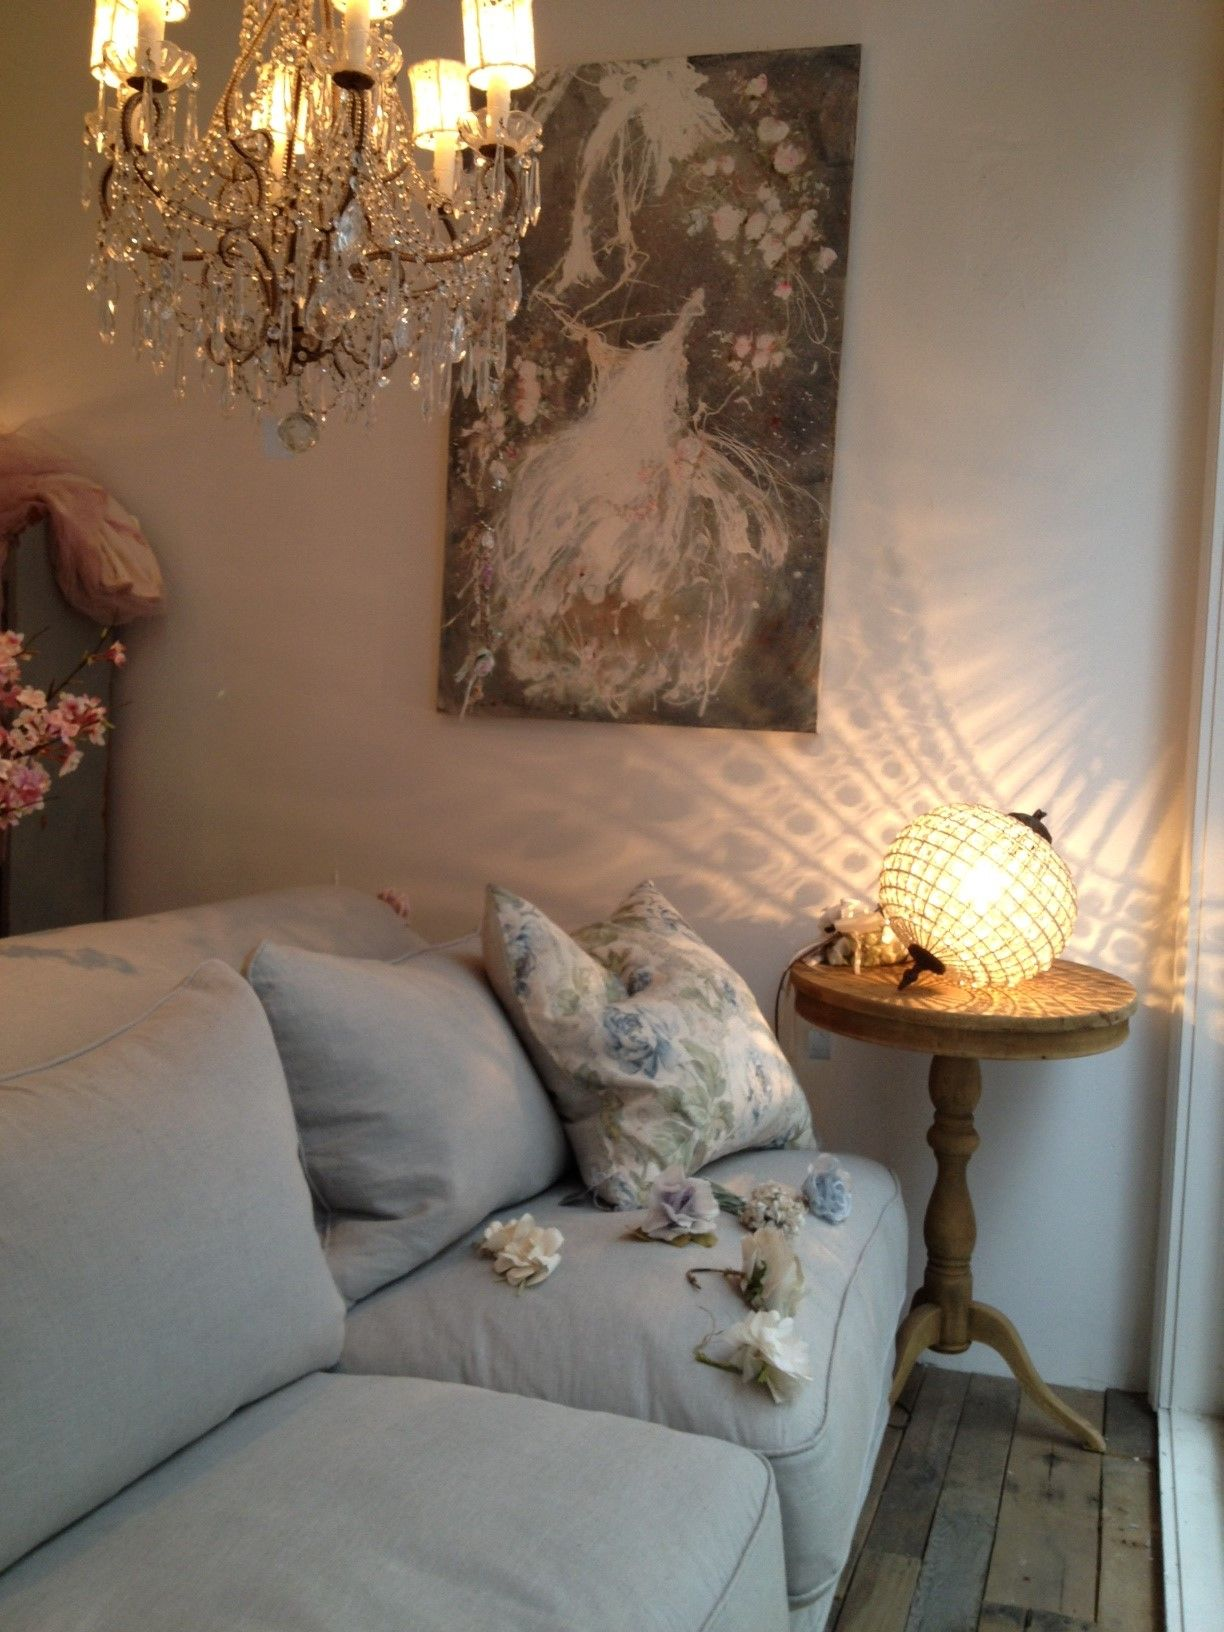 Shabby chic couture furniture Rachel Rachel Ashwell Shabby Chic Couture Store Comfy Sofa Laurence Amelie Painting Estoyen Rachel Ashwell Shabby Chic Couture Store Comfy Sofa Laurence